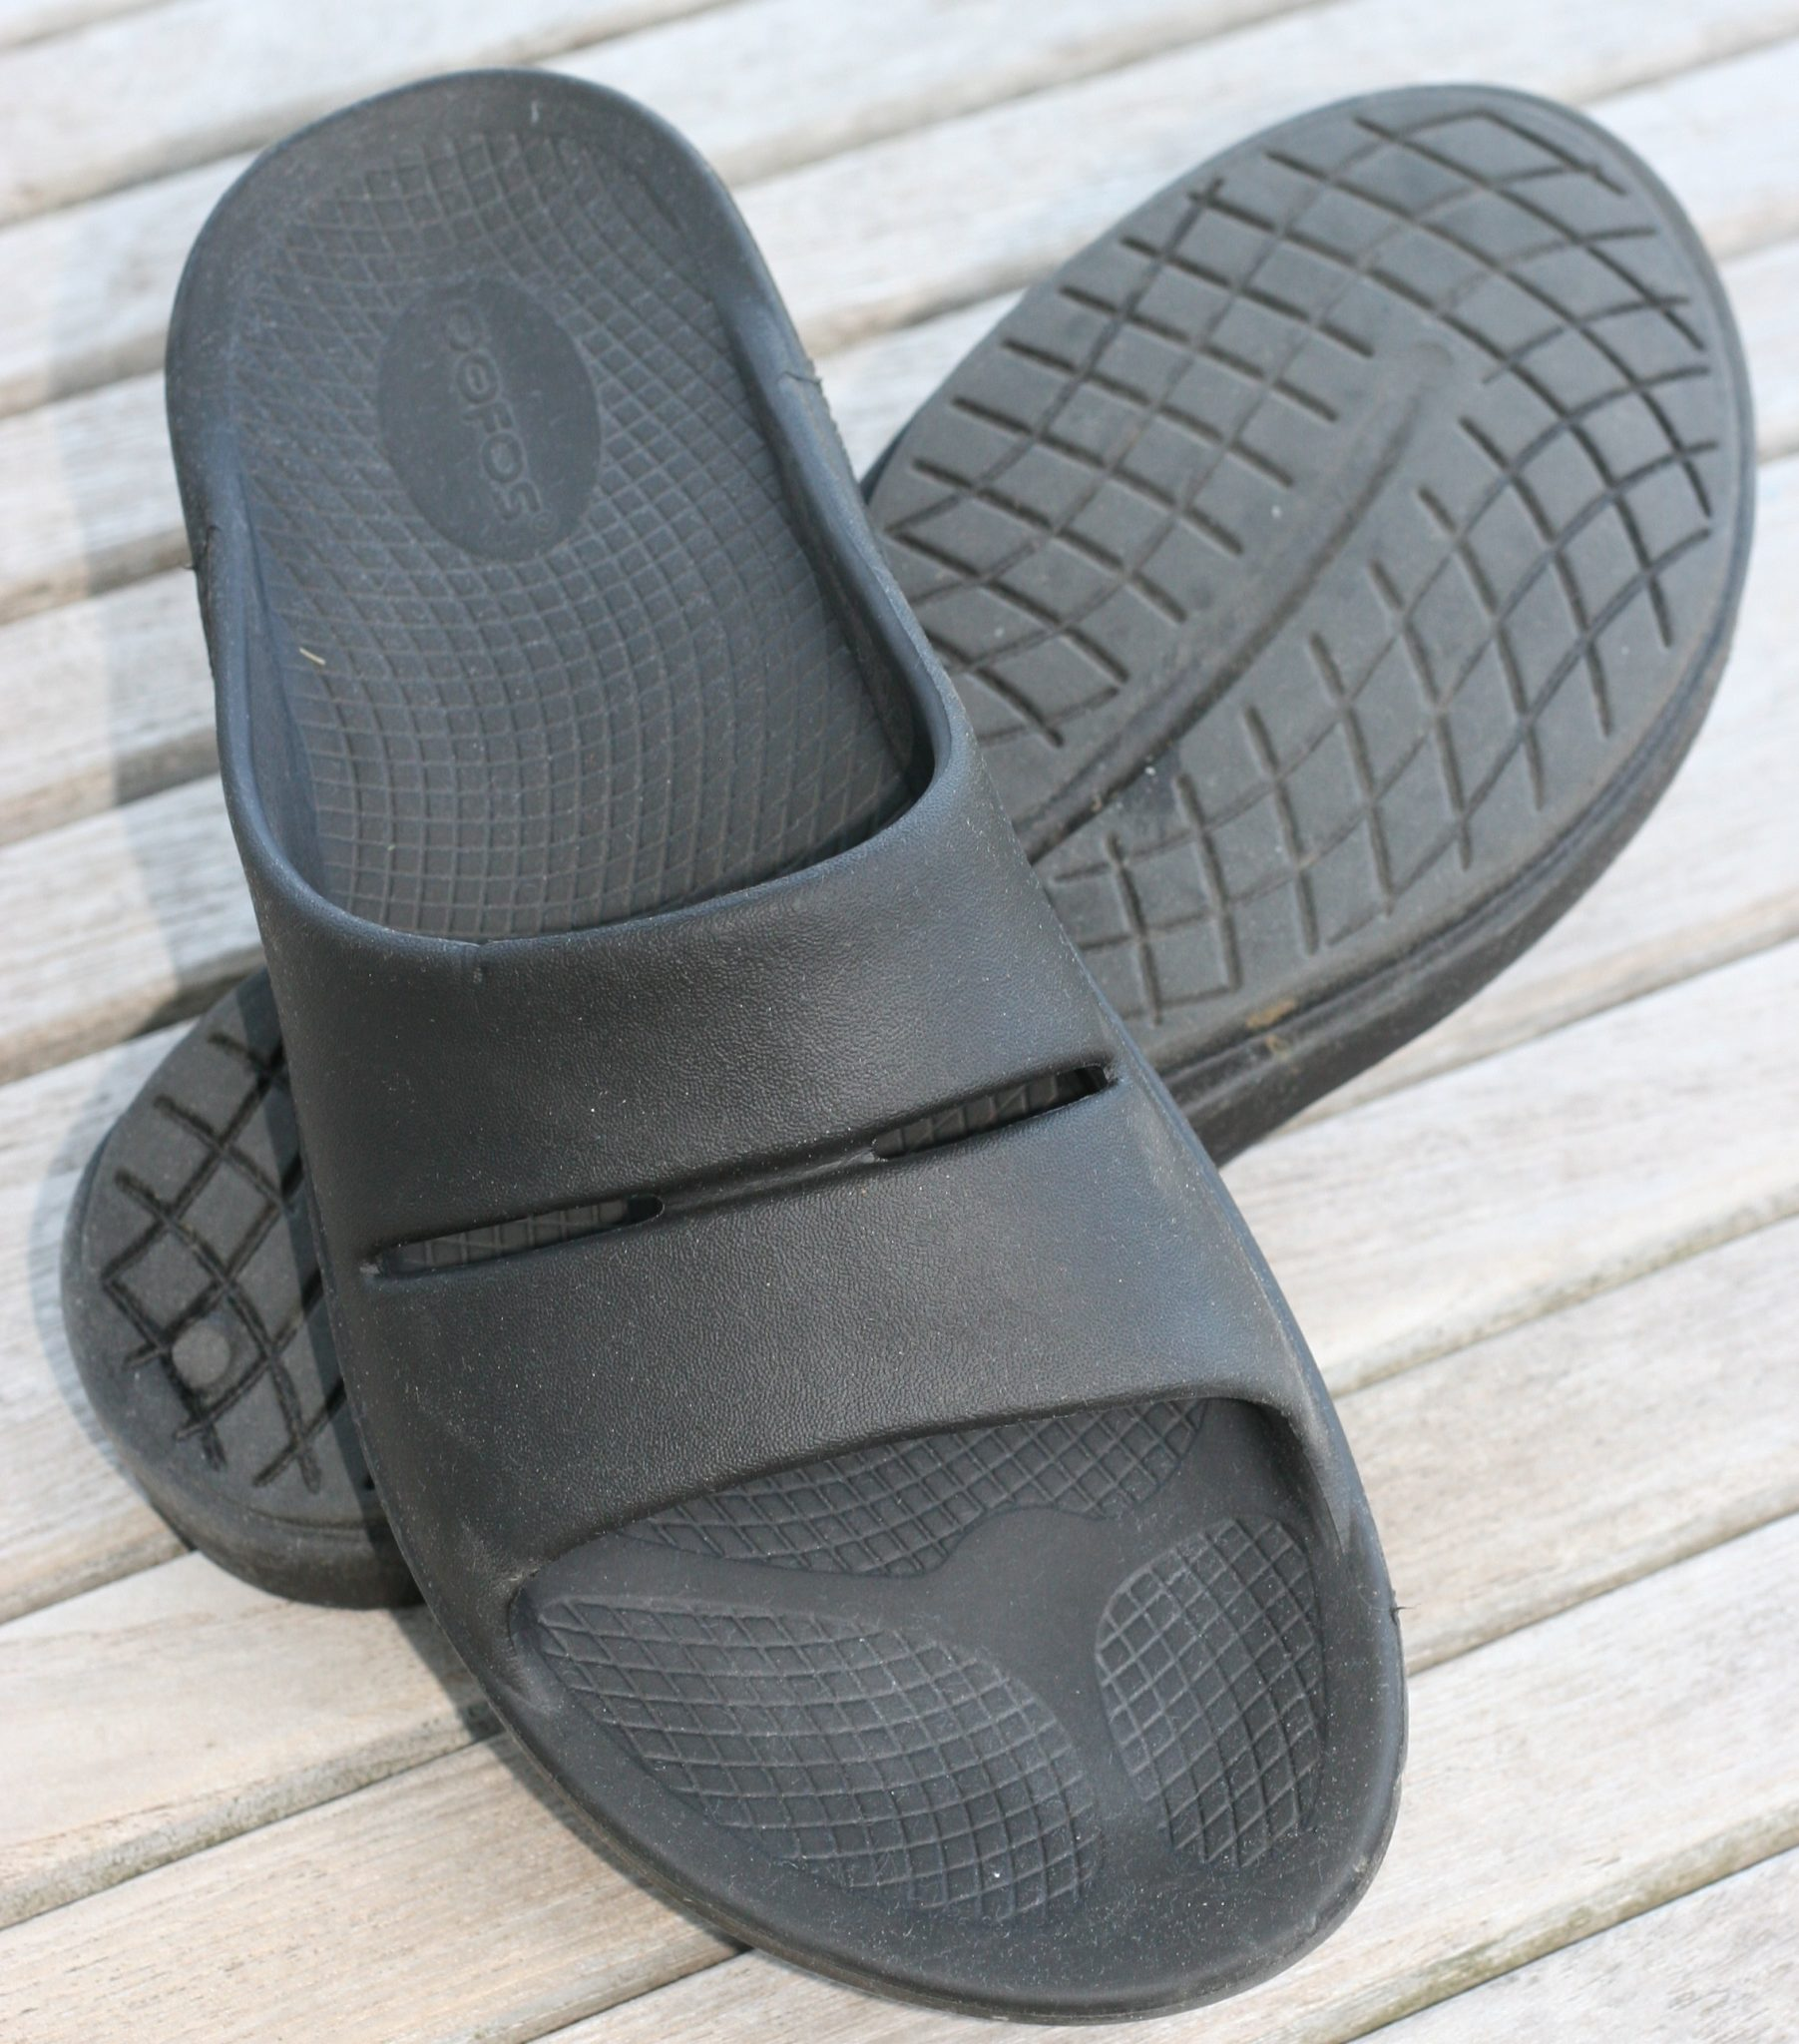 OOFOS Recovery Footwear Review